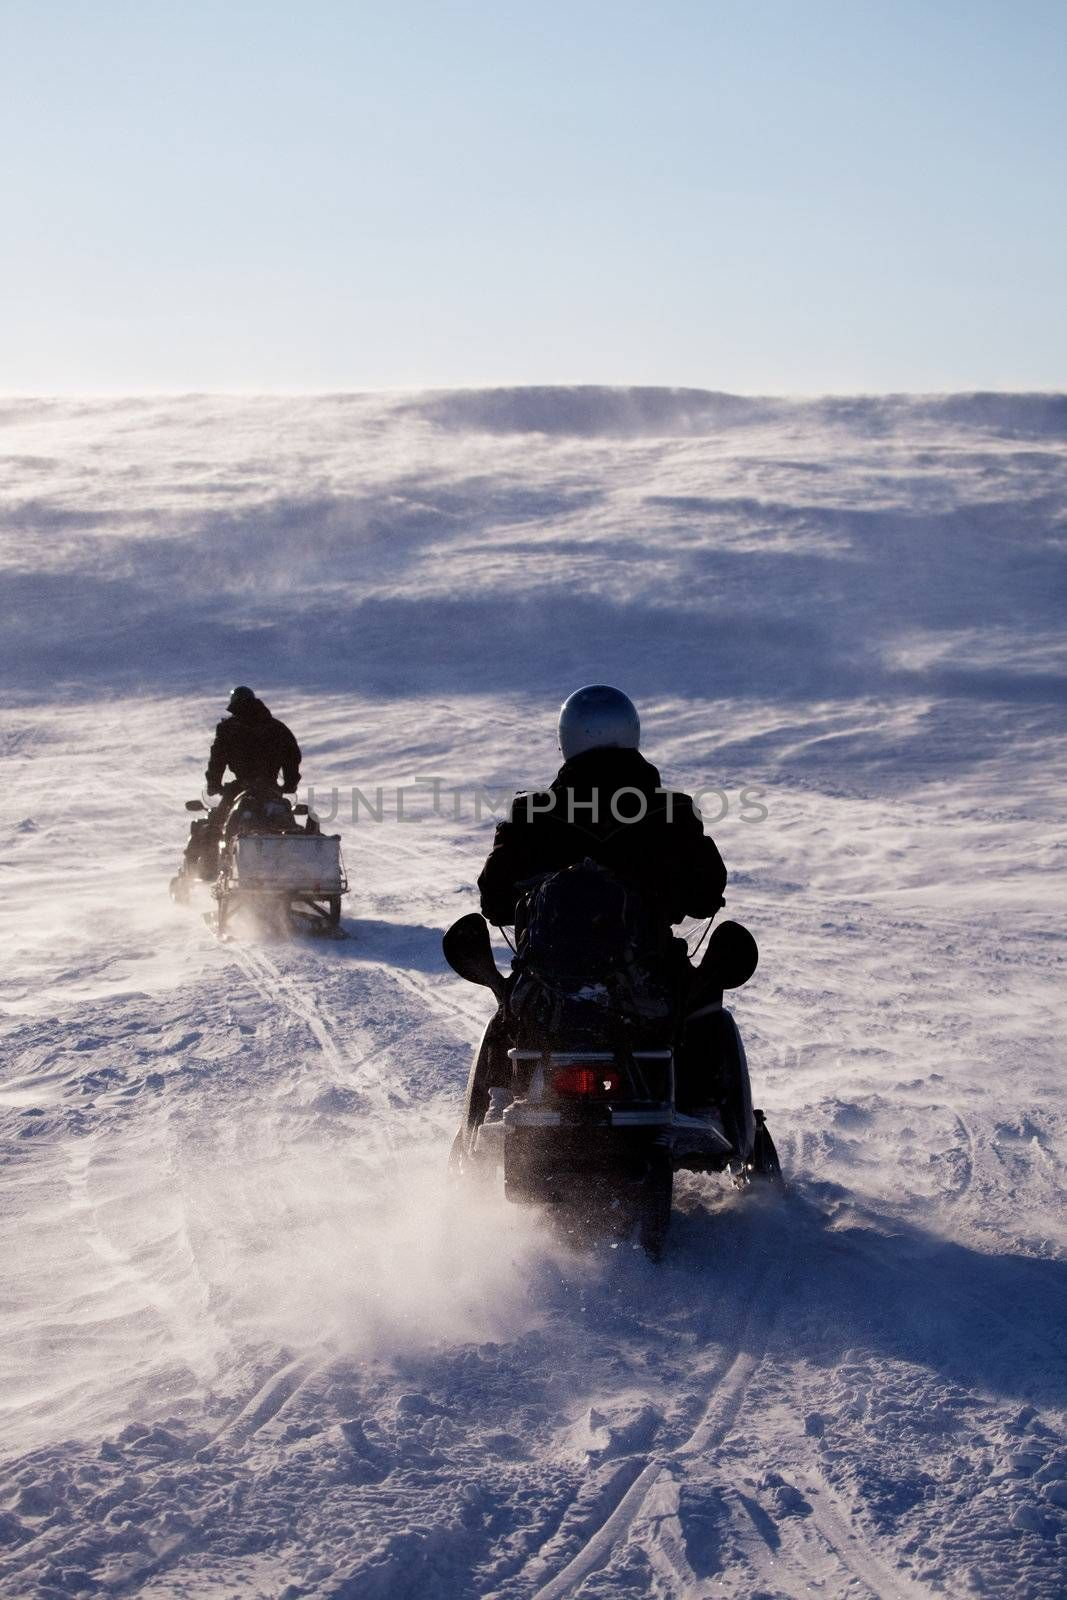 Two people riding up a hill on snowmobiles